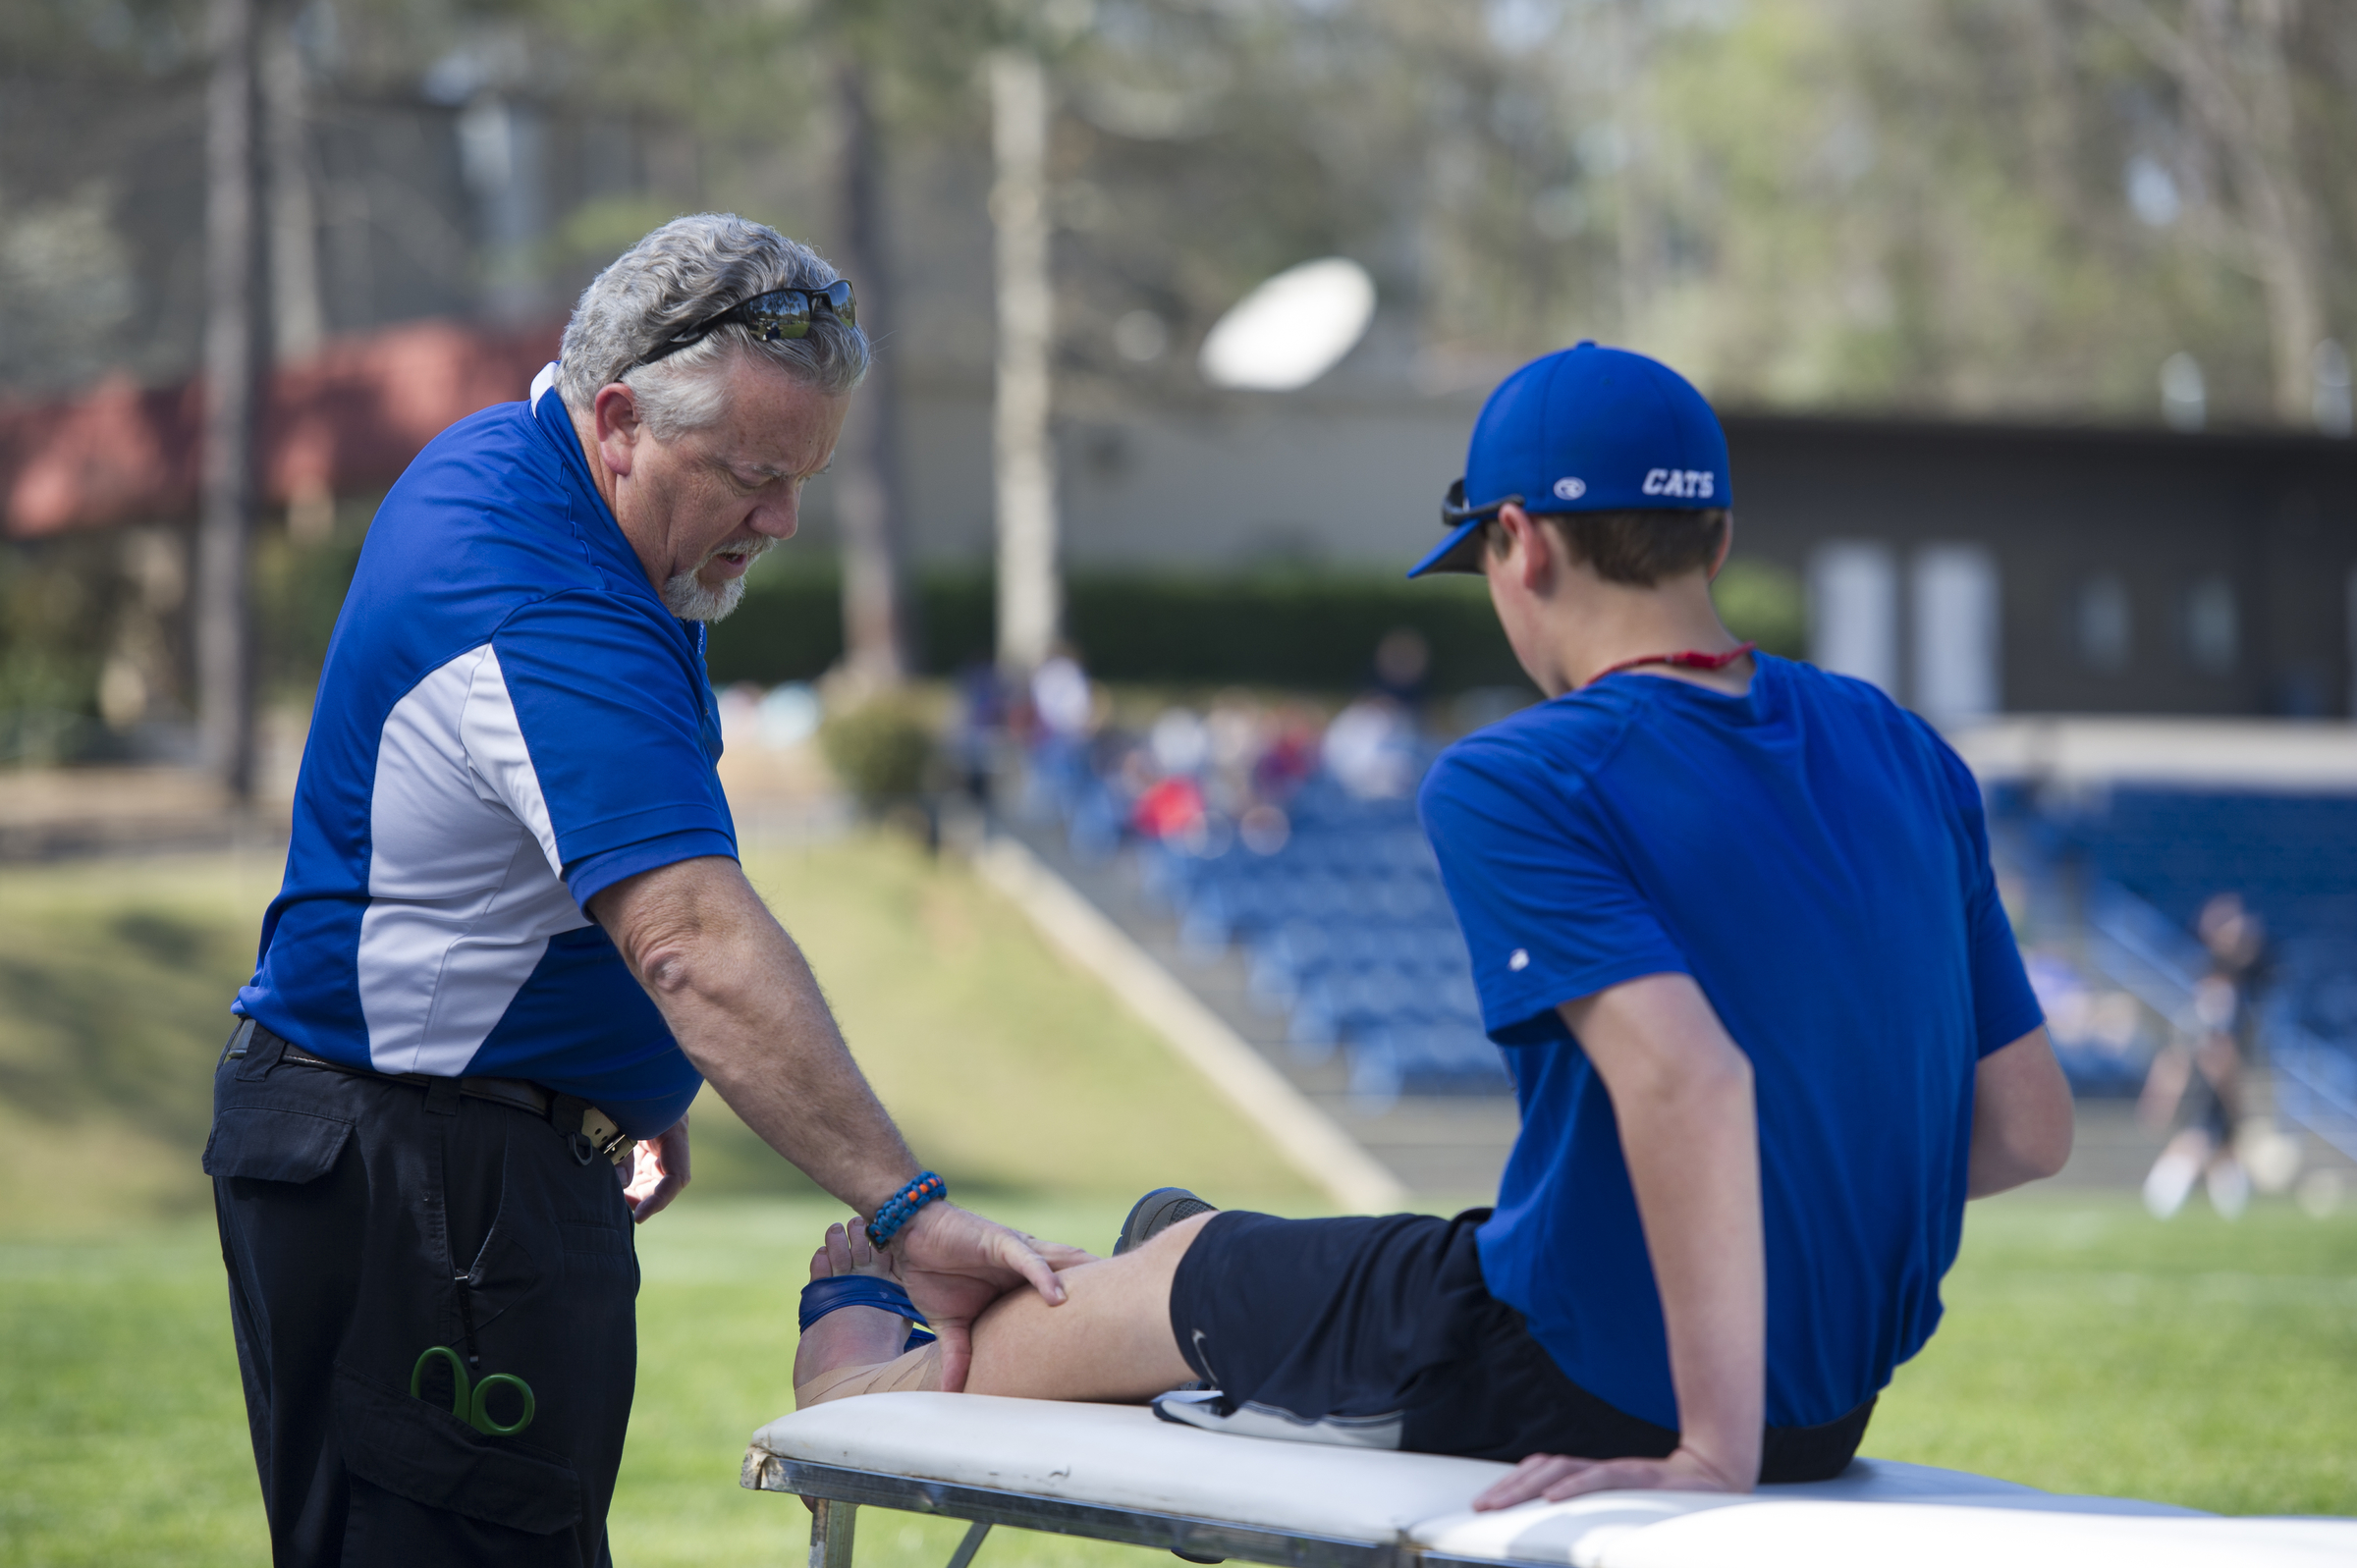 Now open: Fall Sports Injury Clinic, Ortho On-Demand – Jagwire